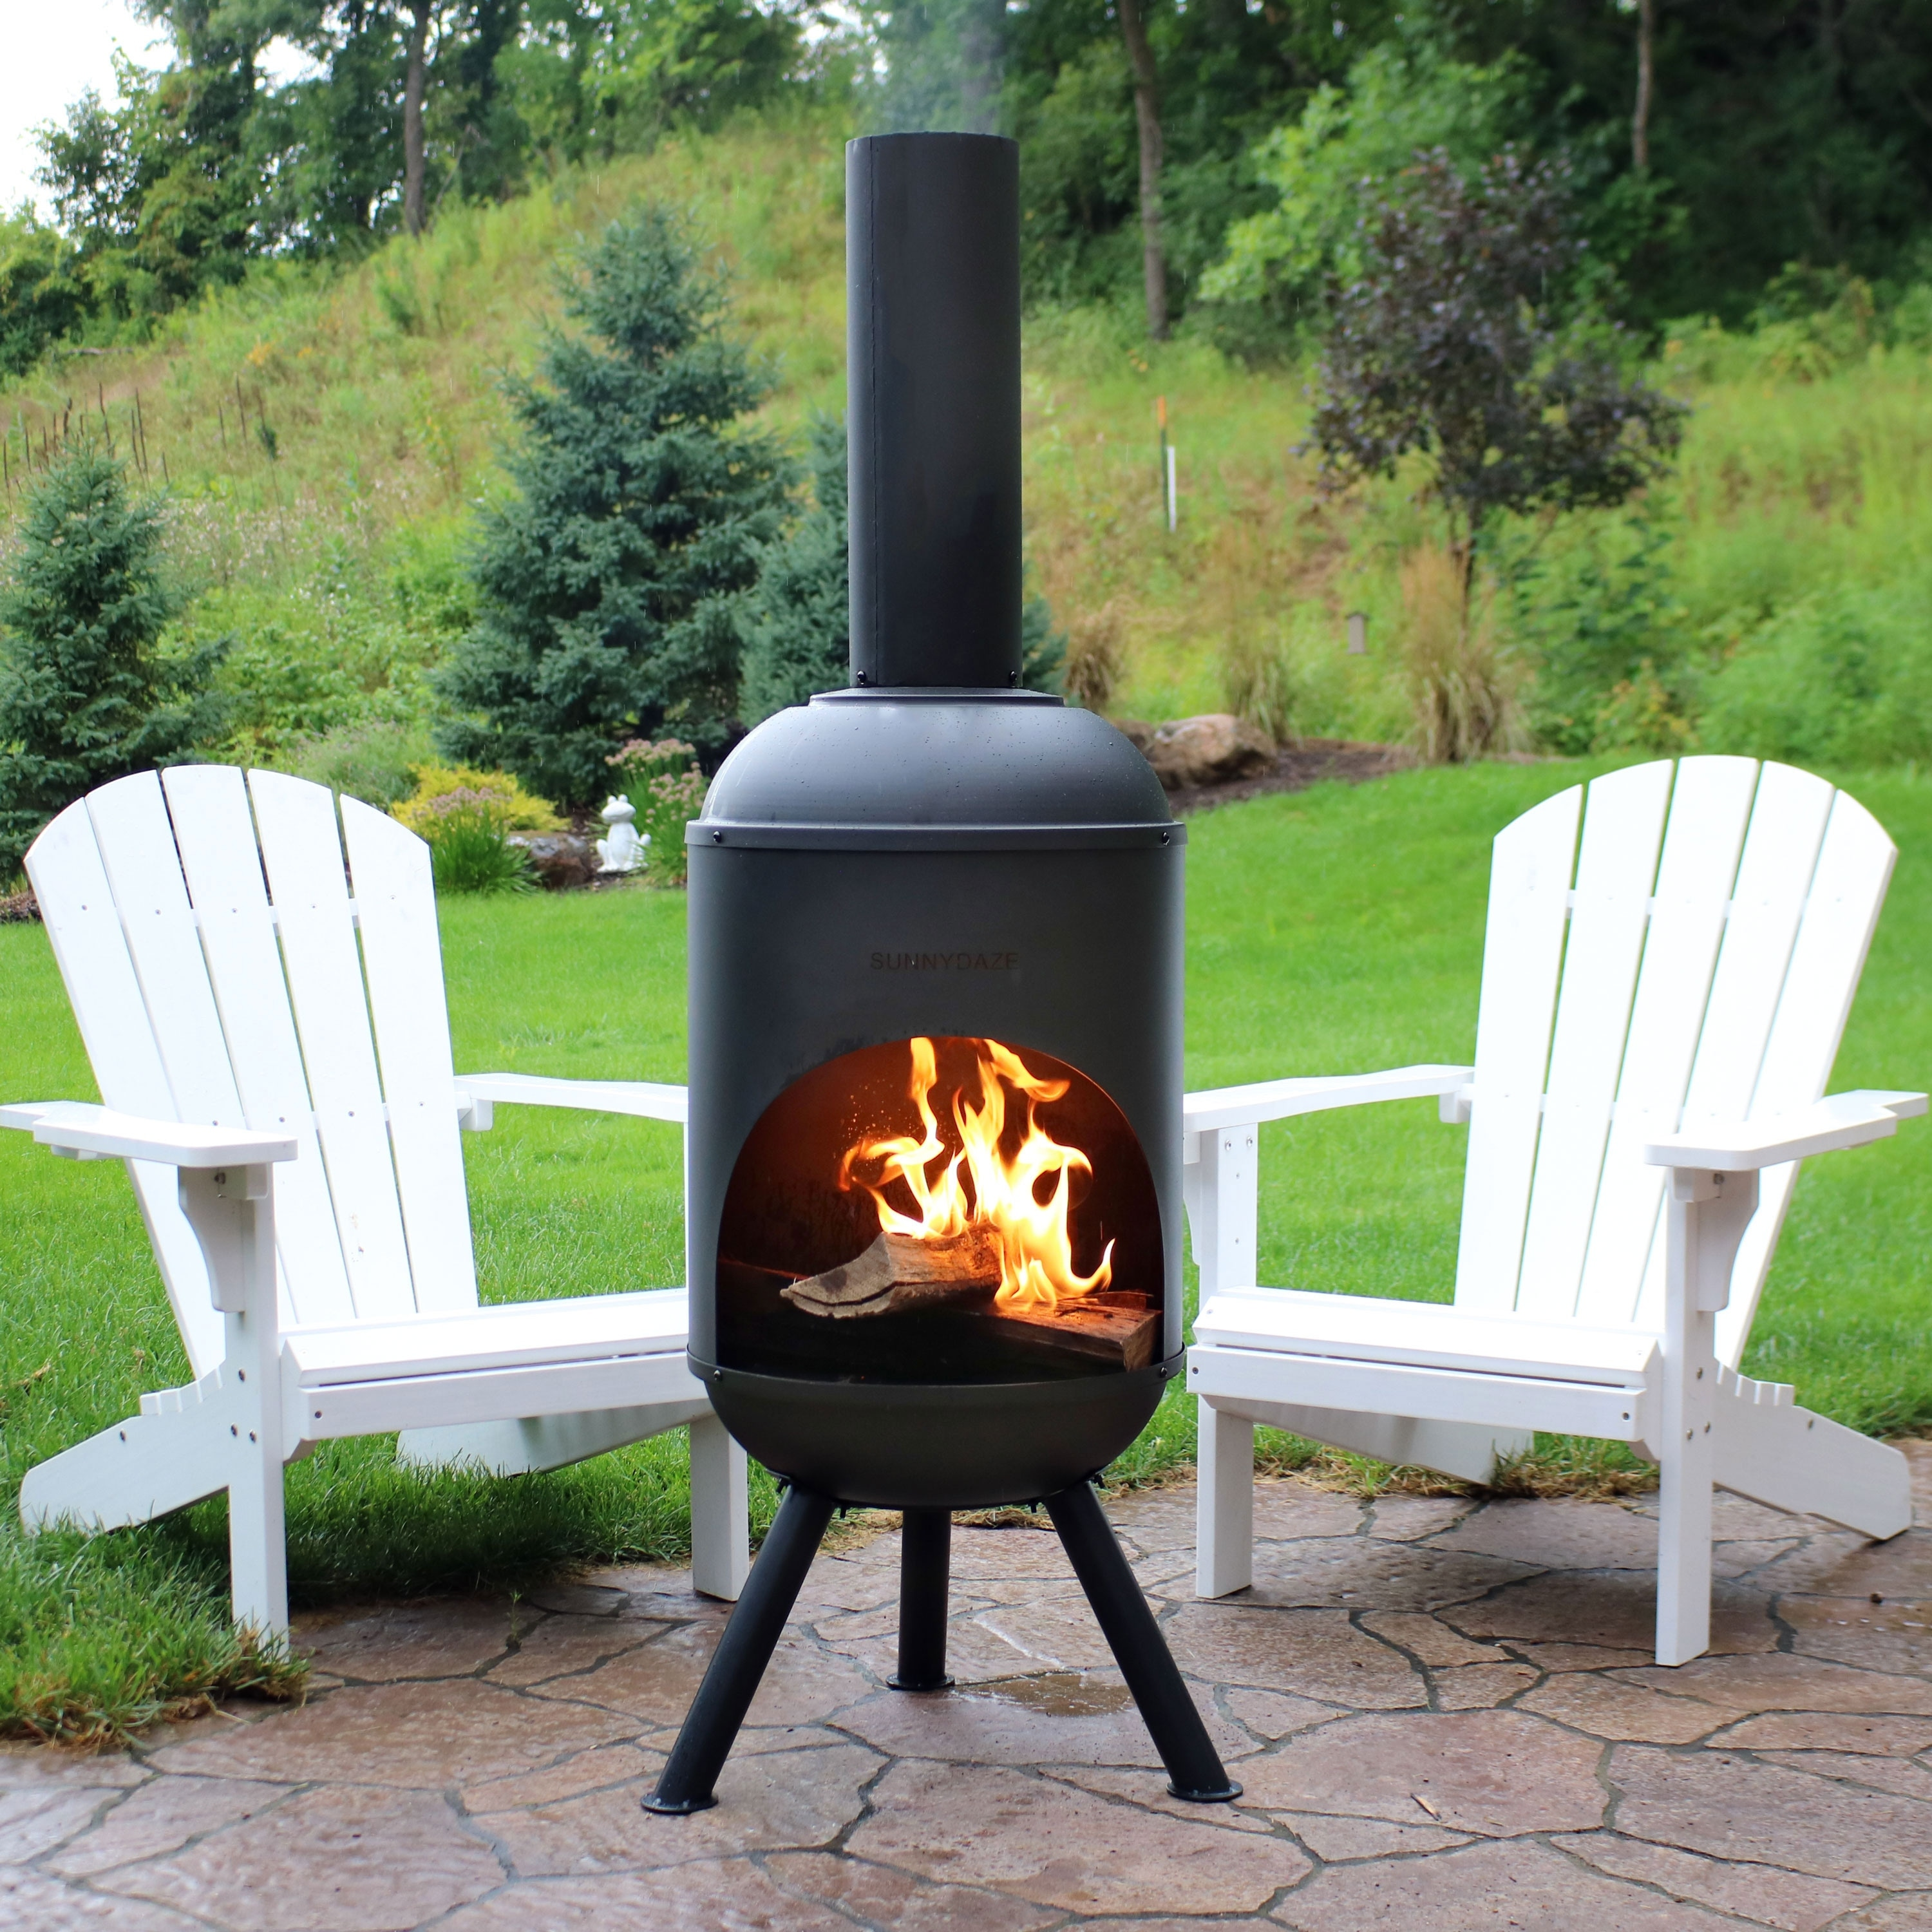 Shop For Sunnydaze 60 Chiminea Outdoor Wood Burning Fire Pit Black Steel With Fire Poker Get Free Delivery On Everything At Overstock Your Online Garden Patio Outlet Store Get 5 In Rewards With Club O 21853940